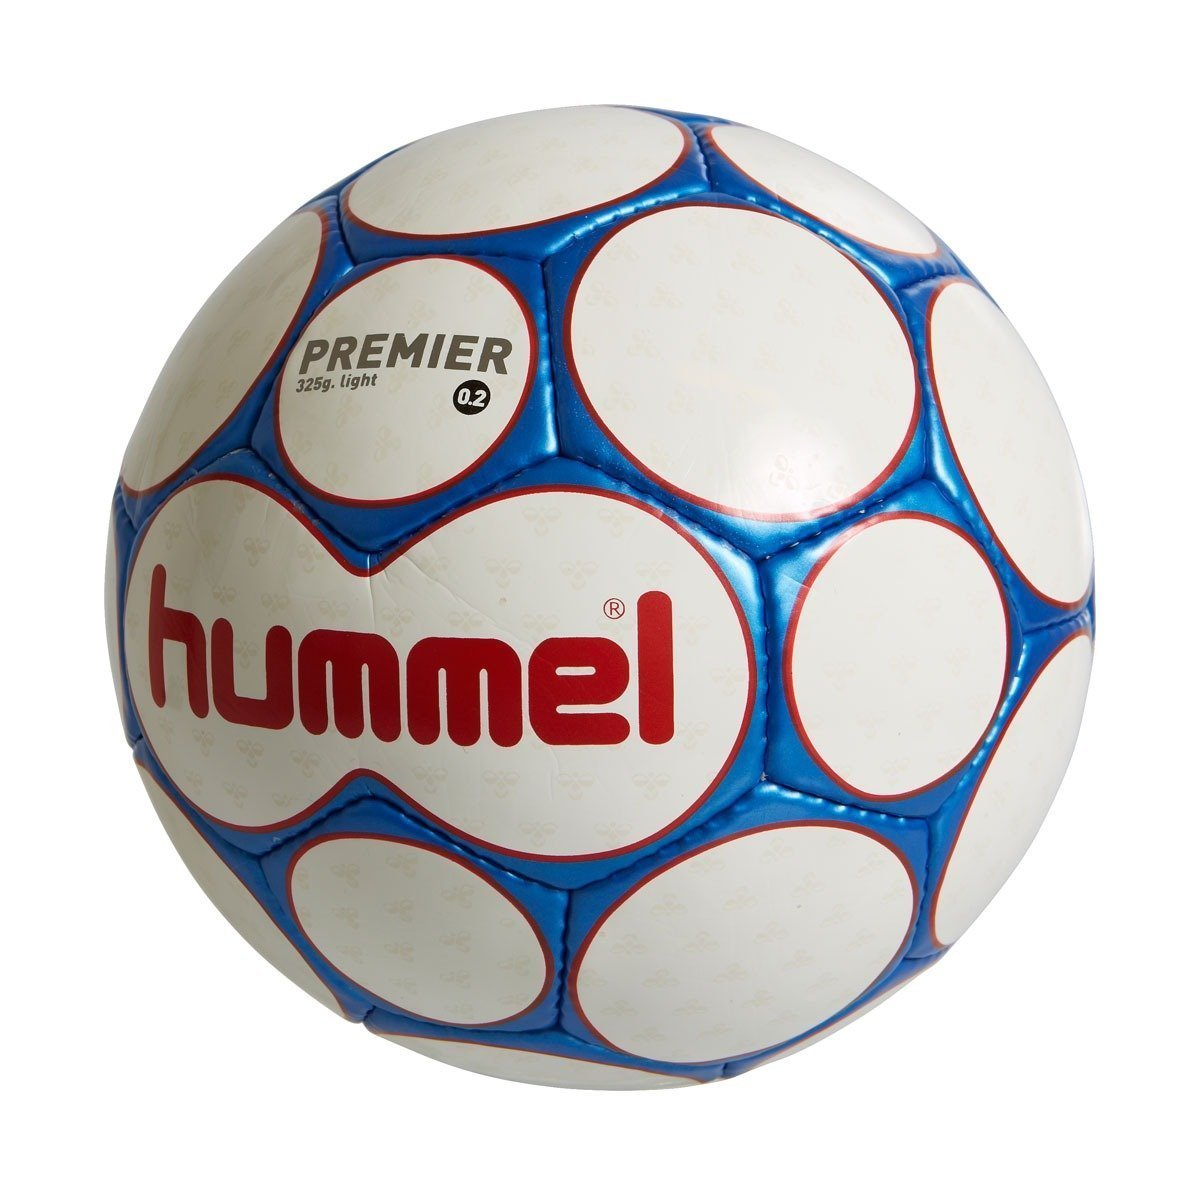 Hummel 0.2 premier light (junior) fra Hummel på billigsport24